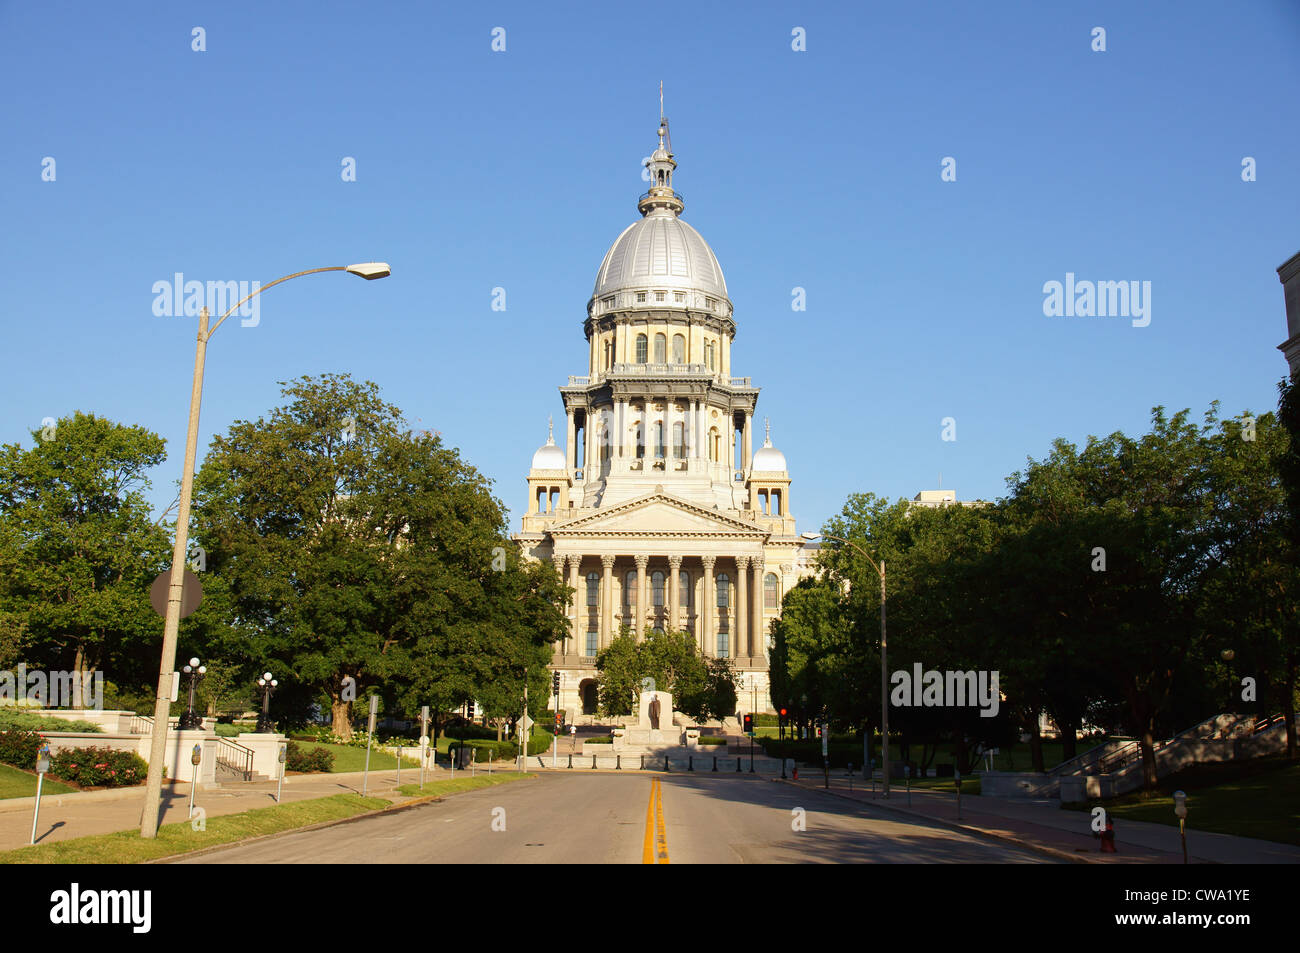 capitol building springfield illinois capital seat of government buildings housing chief governmental offices - Stock Image